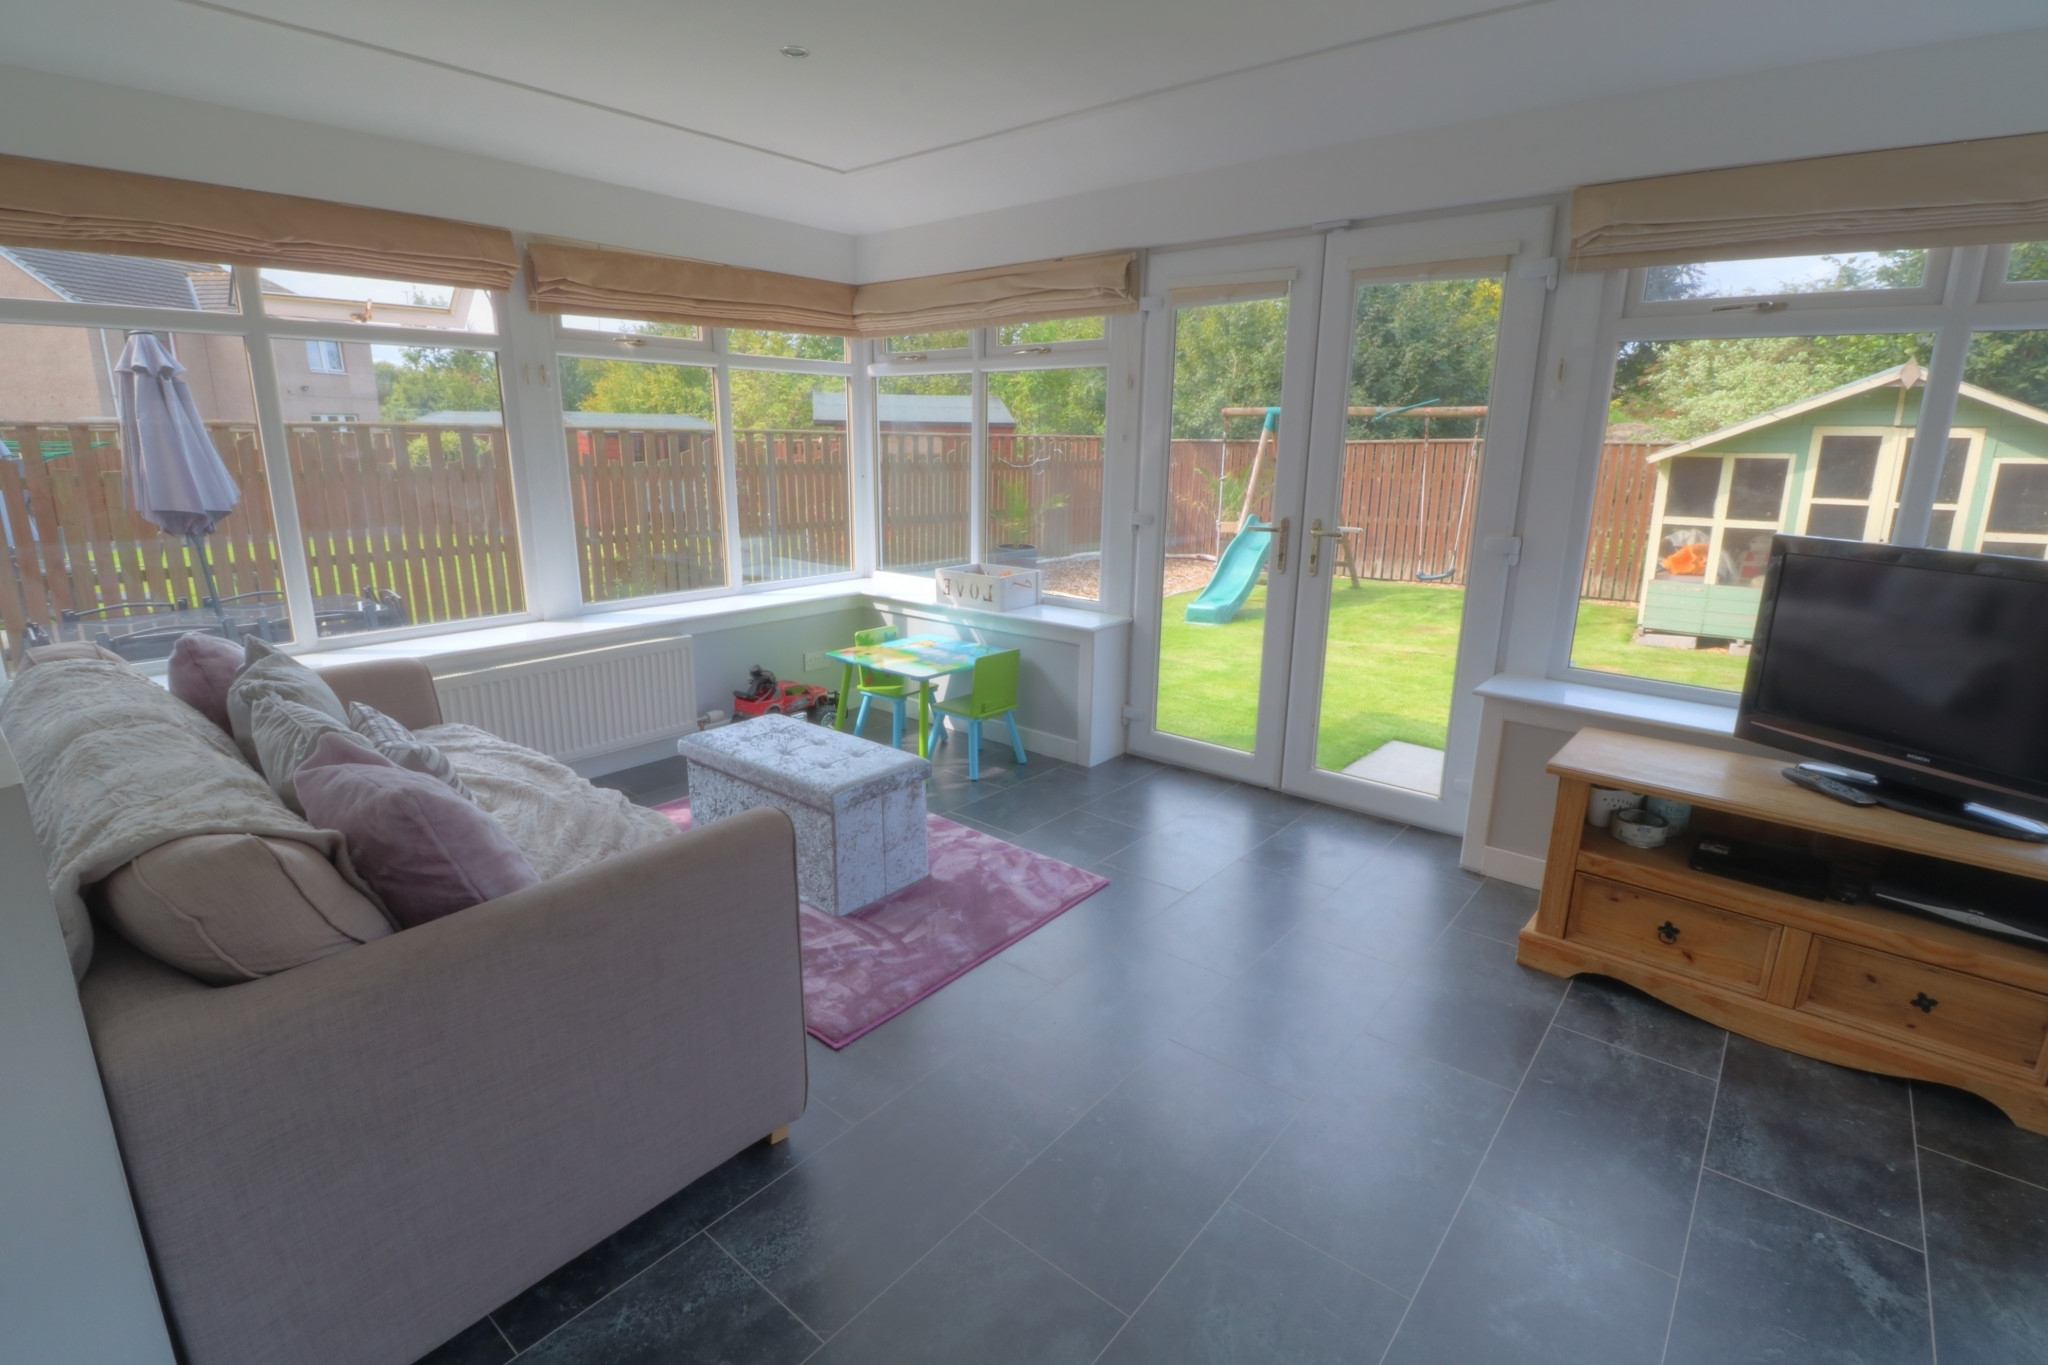 2018 Property For Sale On Mallard Drive, Montrose regarding Mallard 7 Piece Extension Dining Sets